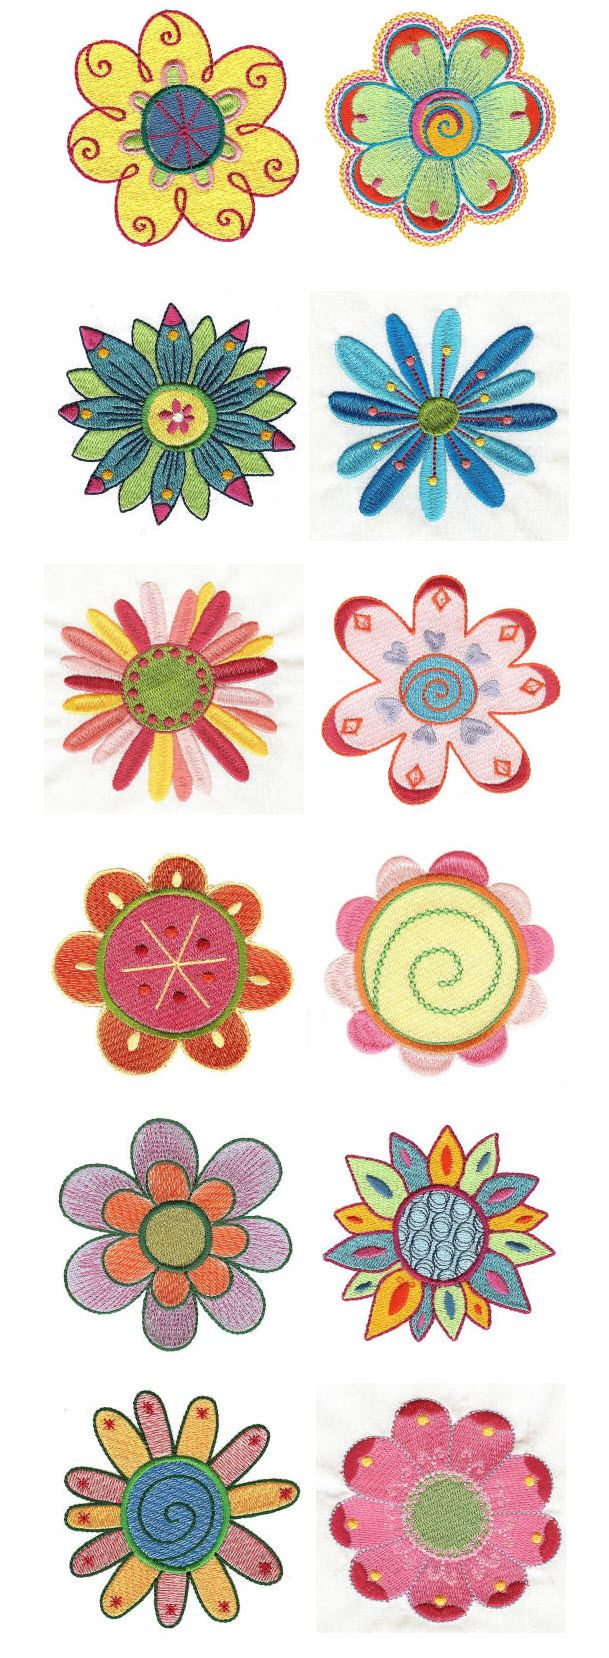 Wonderful Embroidery | Free Machine Embroidery Designs | My Funky Garden Flowers